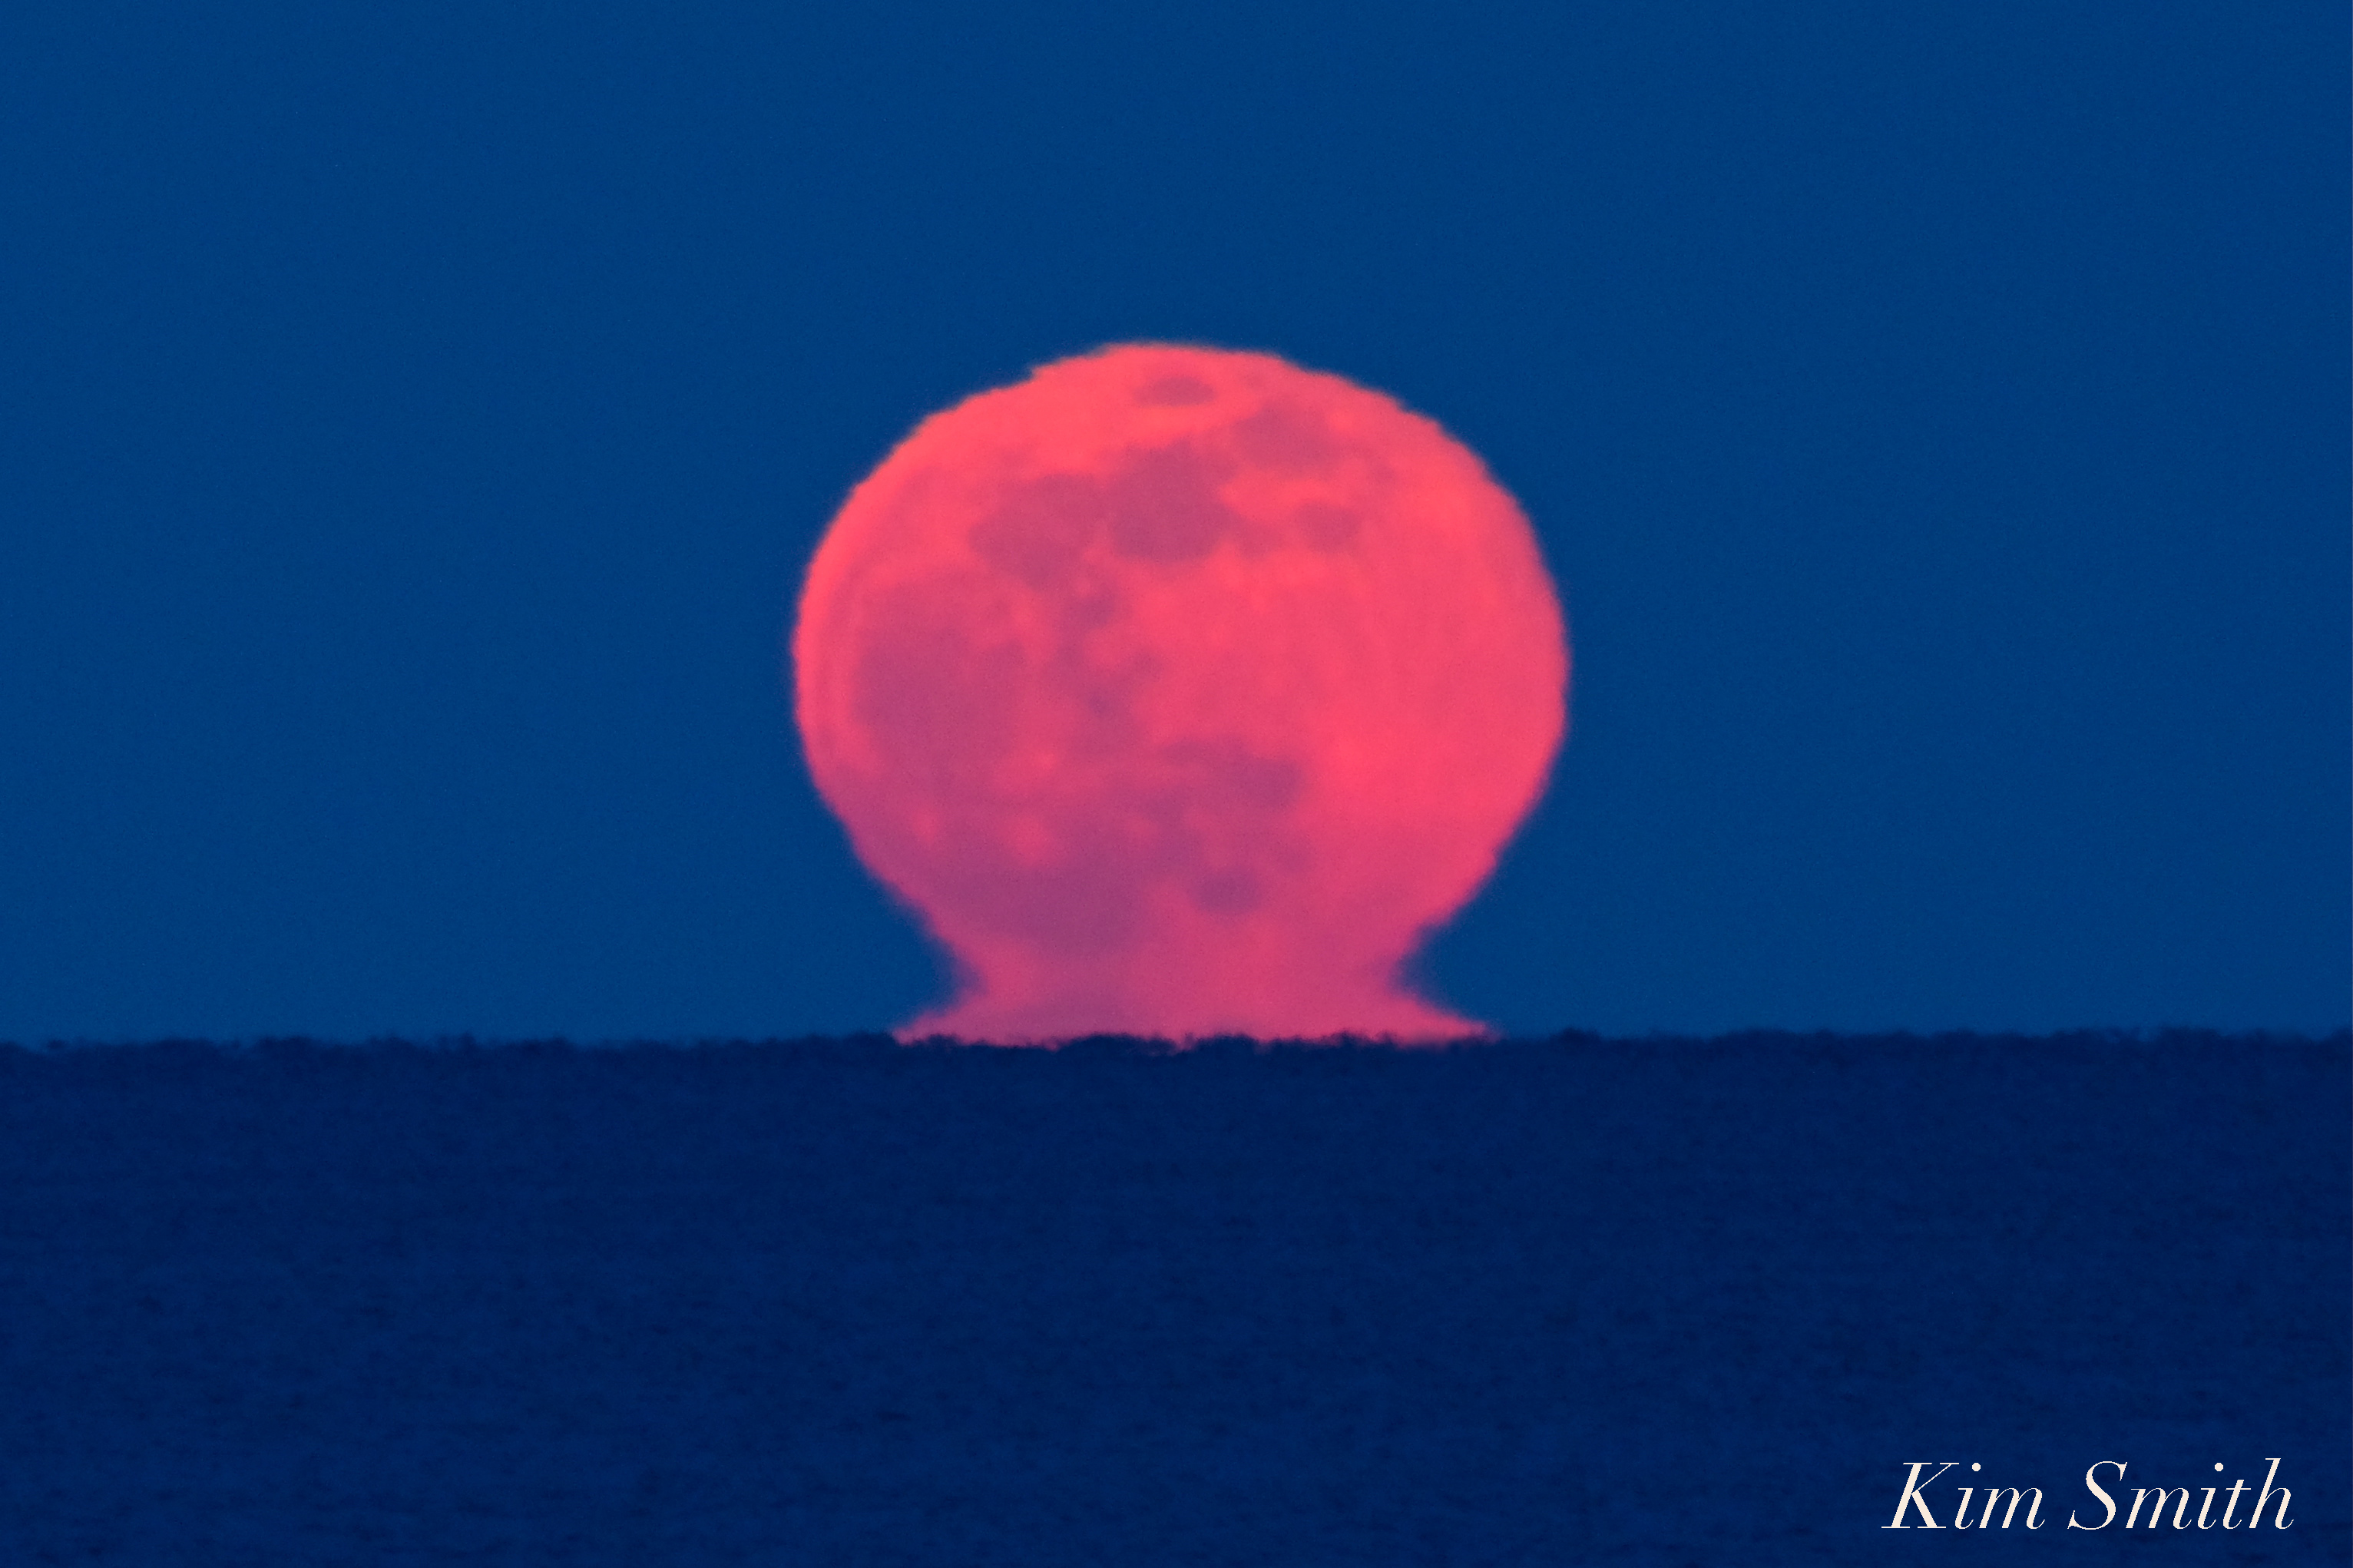 A MAGICAL MIRAGE CALLED AN 'OMEGA' MOONRISE – Good Morning